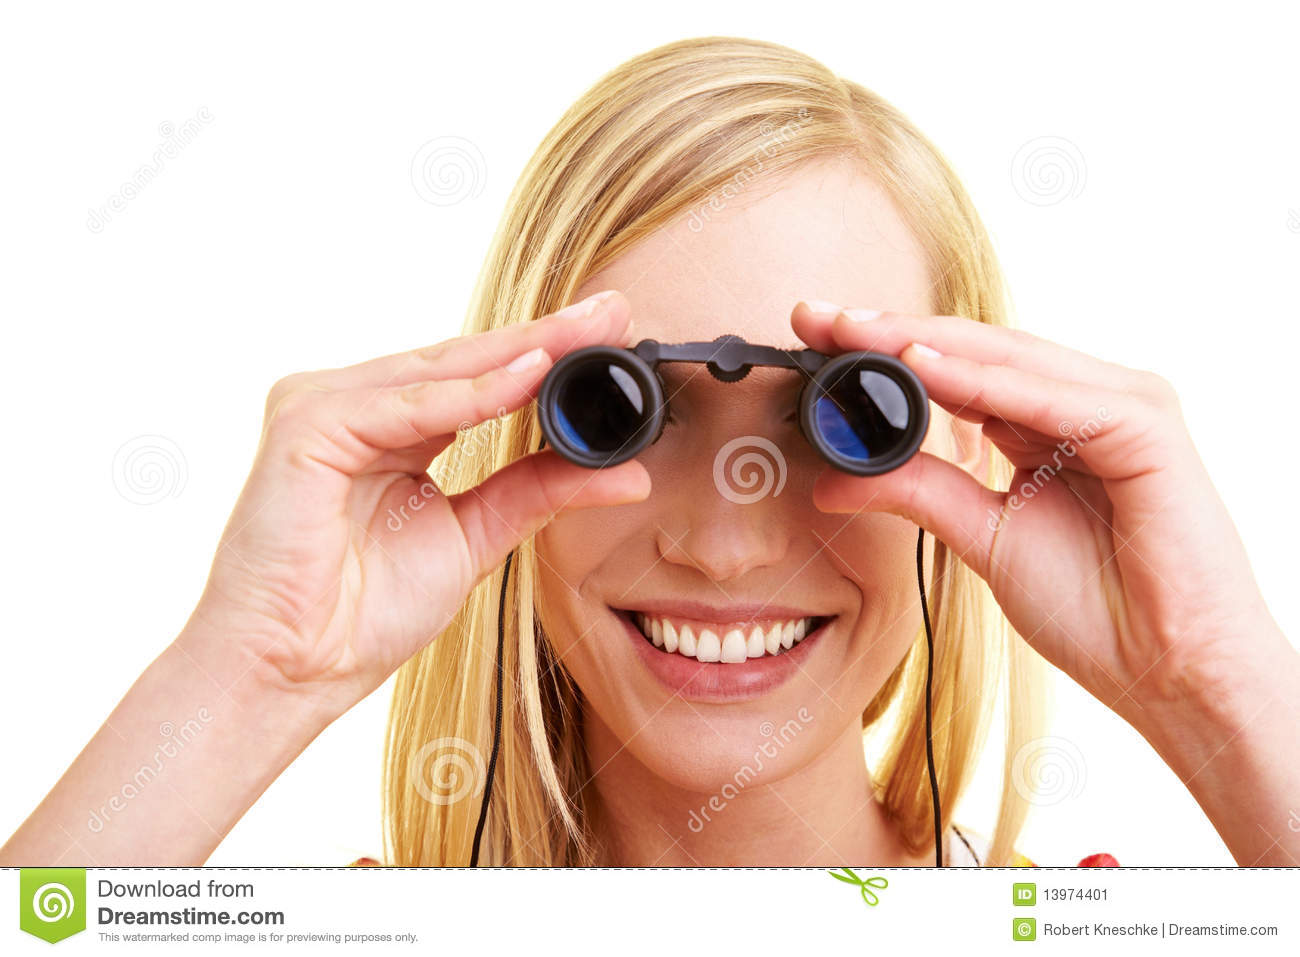 Woman Looking Through Binoculars Stock Image - Image: 13974401